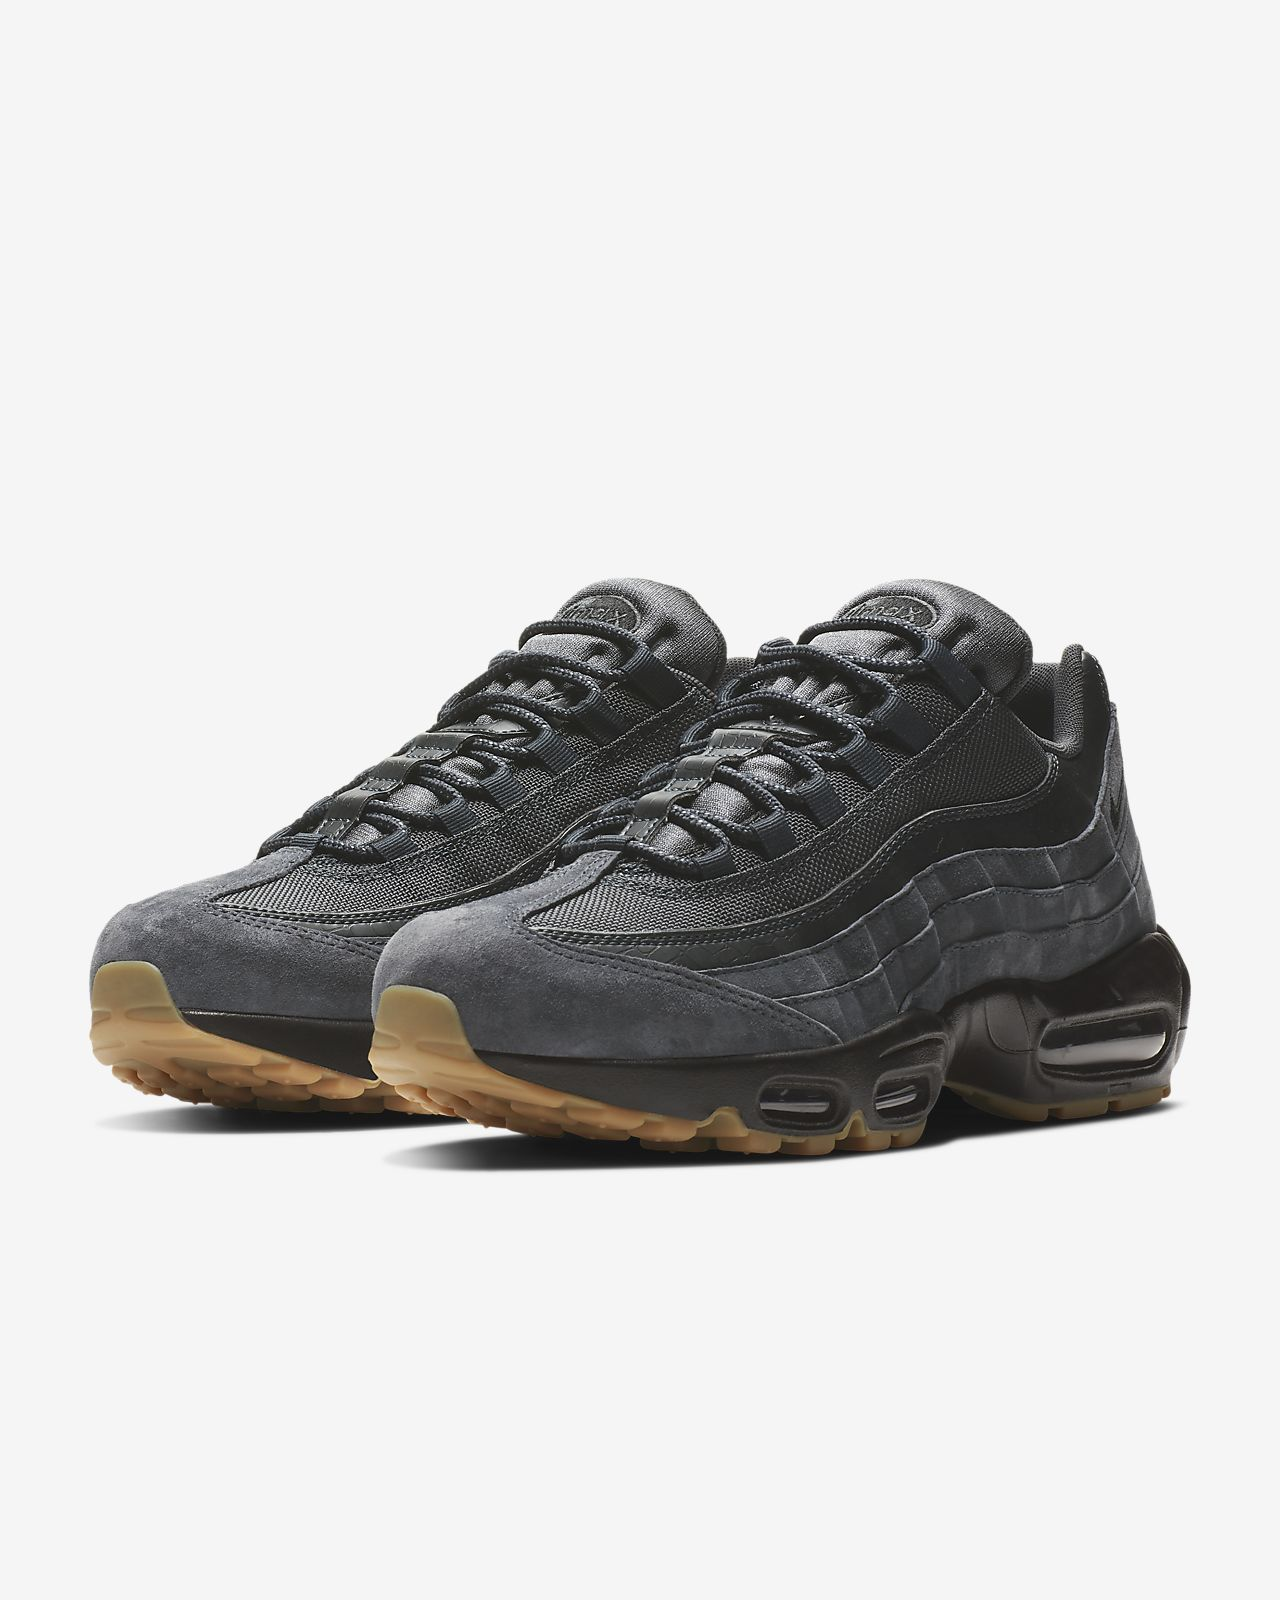 hot sale online b68a4 2abbc ... Nike Air Max 95 SE Men s Shoe